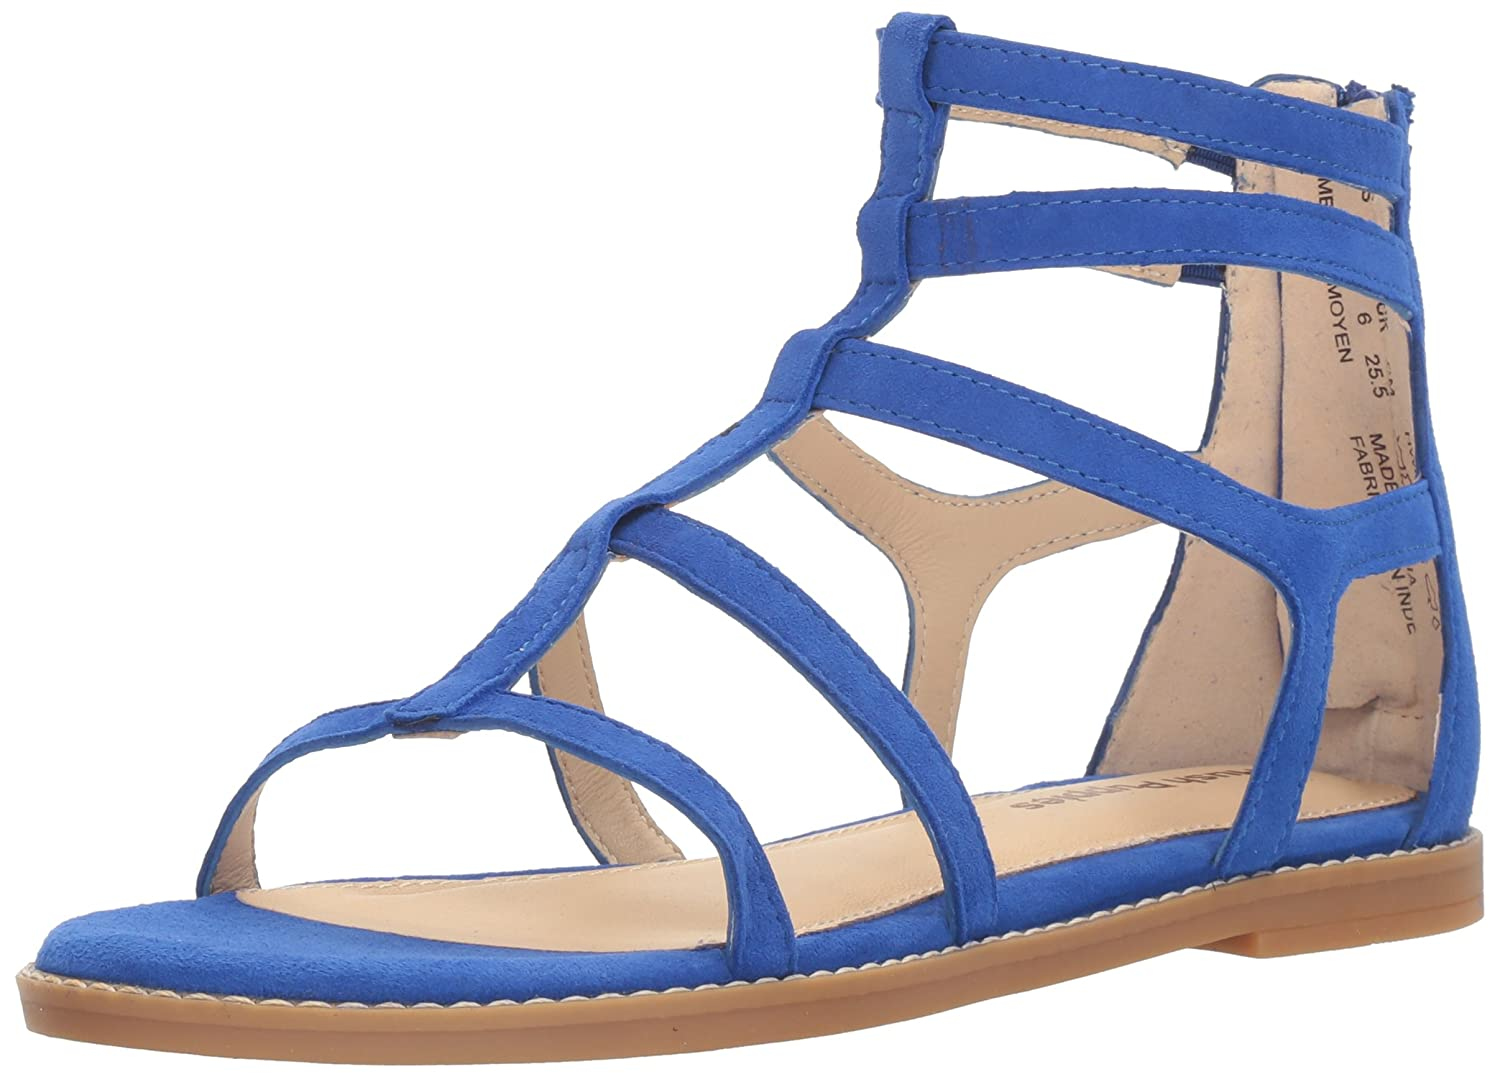 Hush Puppies Women's Abney Lo Chrissie Lo Abney Fashion Sandals B01IRSTK8Y 6.5 W US|Cobalt Suede 4224f6